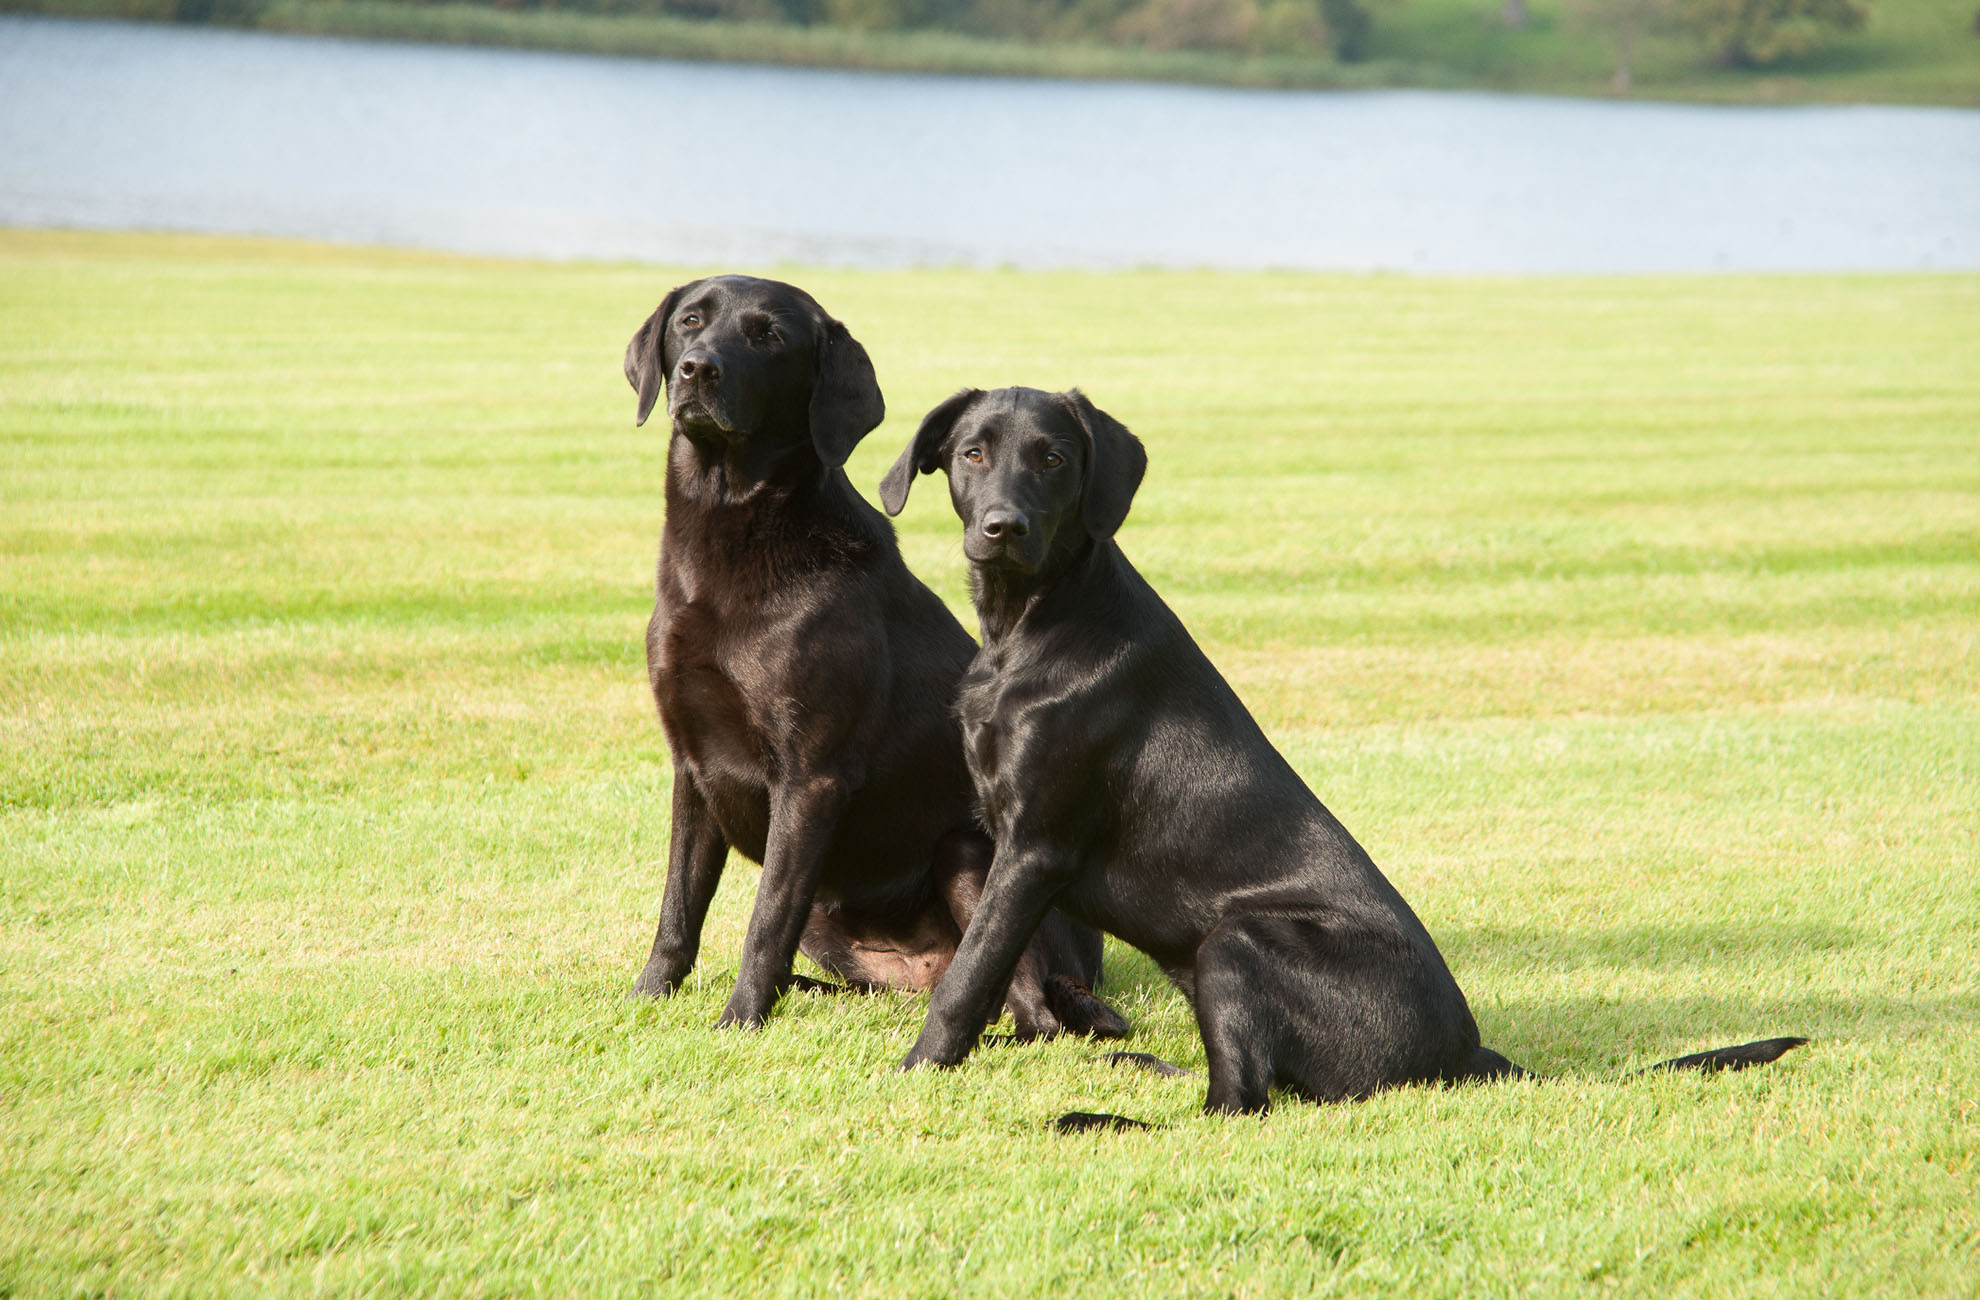 Zola and Zansie the black labradors had a fantastic day during National Dog Day at Comebermere Abbey